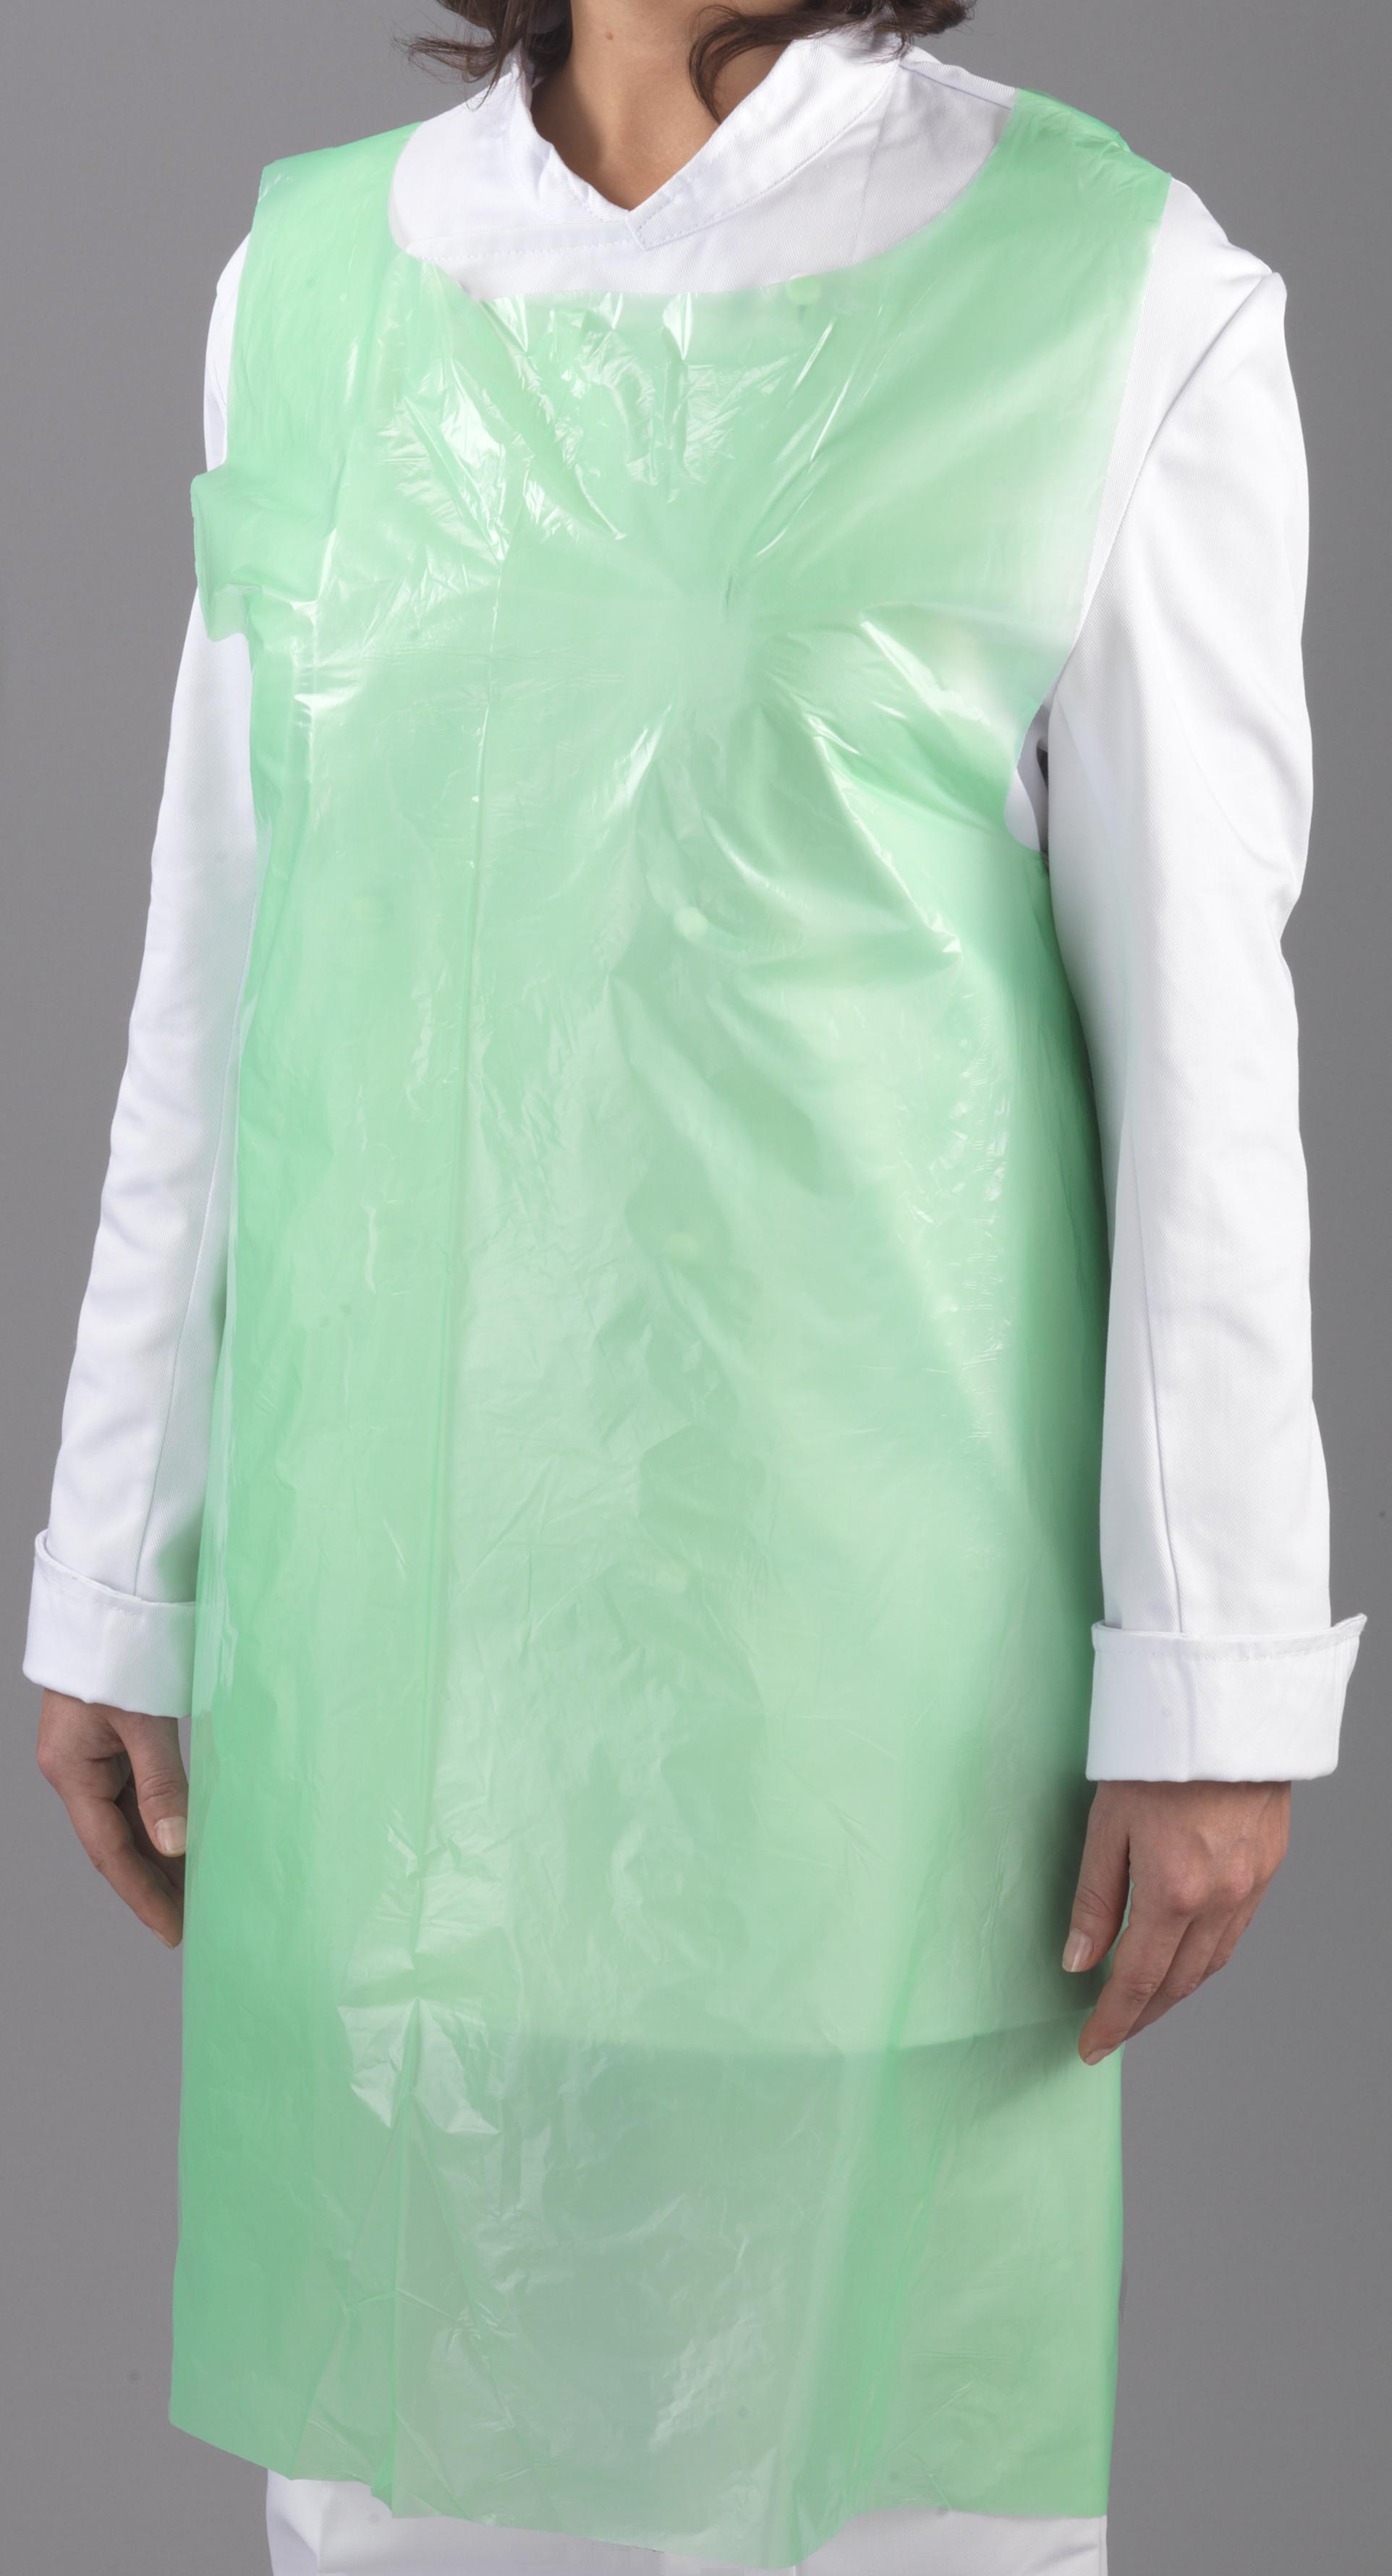 Green Plastic Aprons On Roll